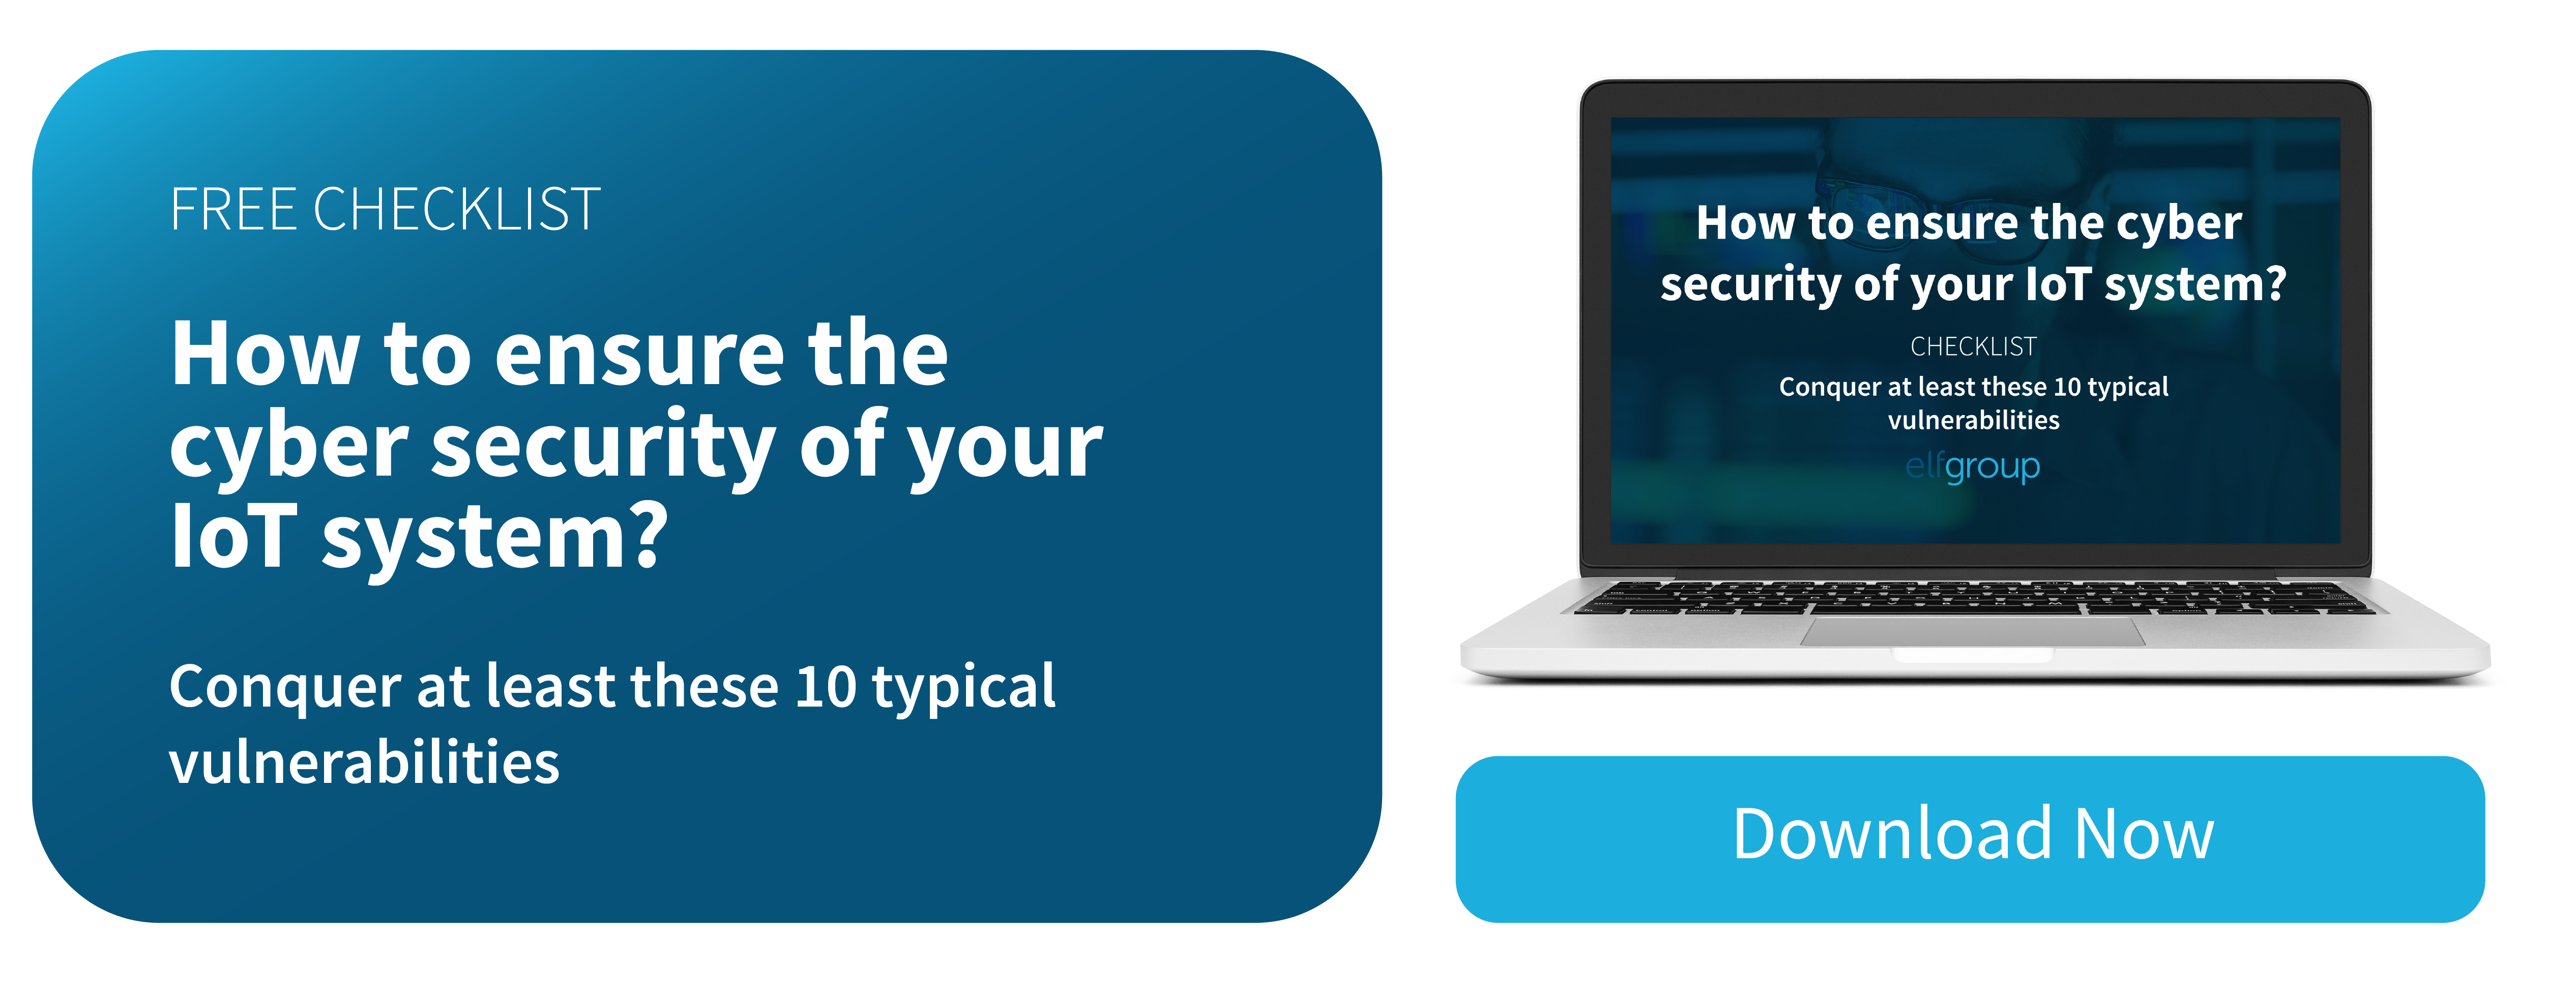 Download guide: How to ensure the cyber security of your IoT system?